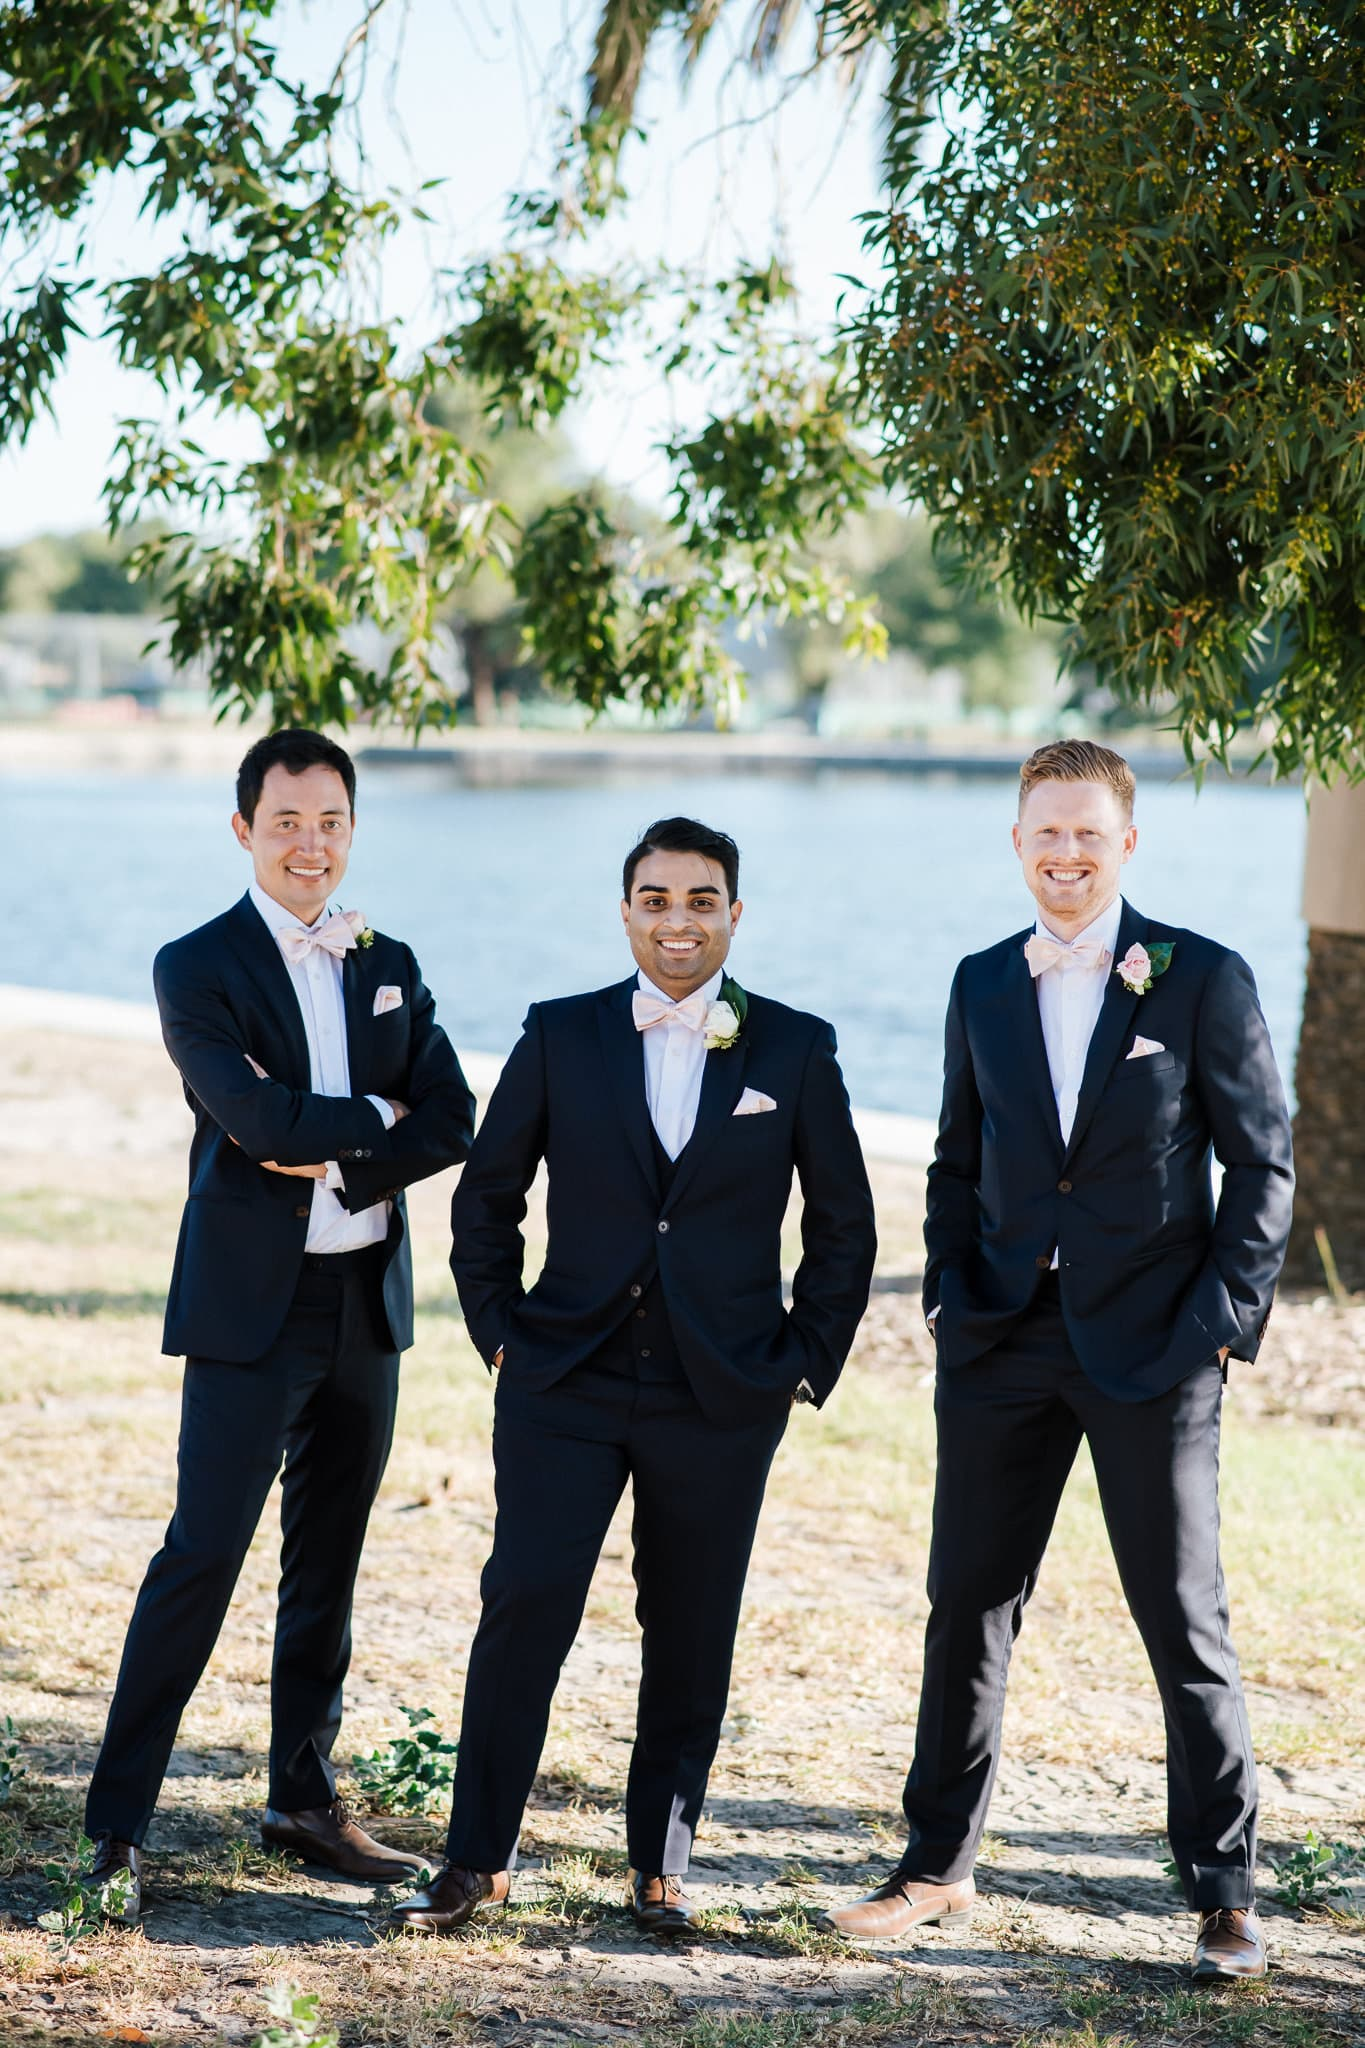 Melbourne groom, Rohit with his groomsmen at his colourful multicultural wedding.